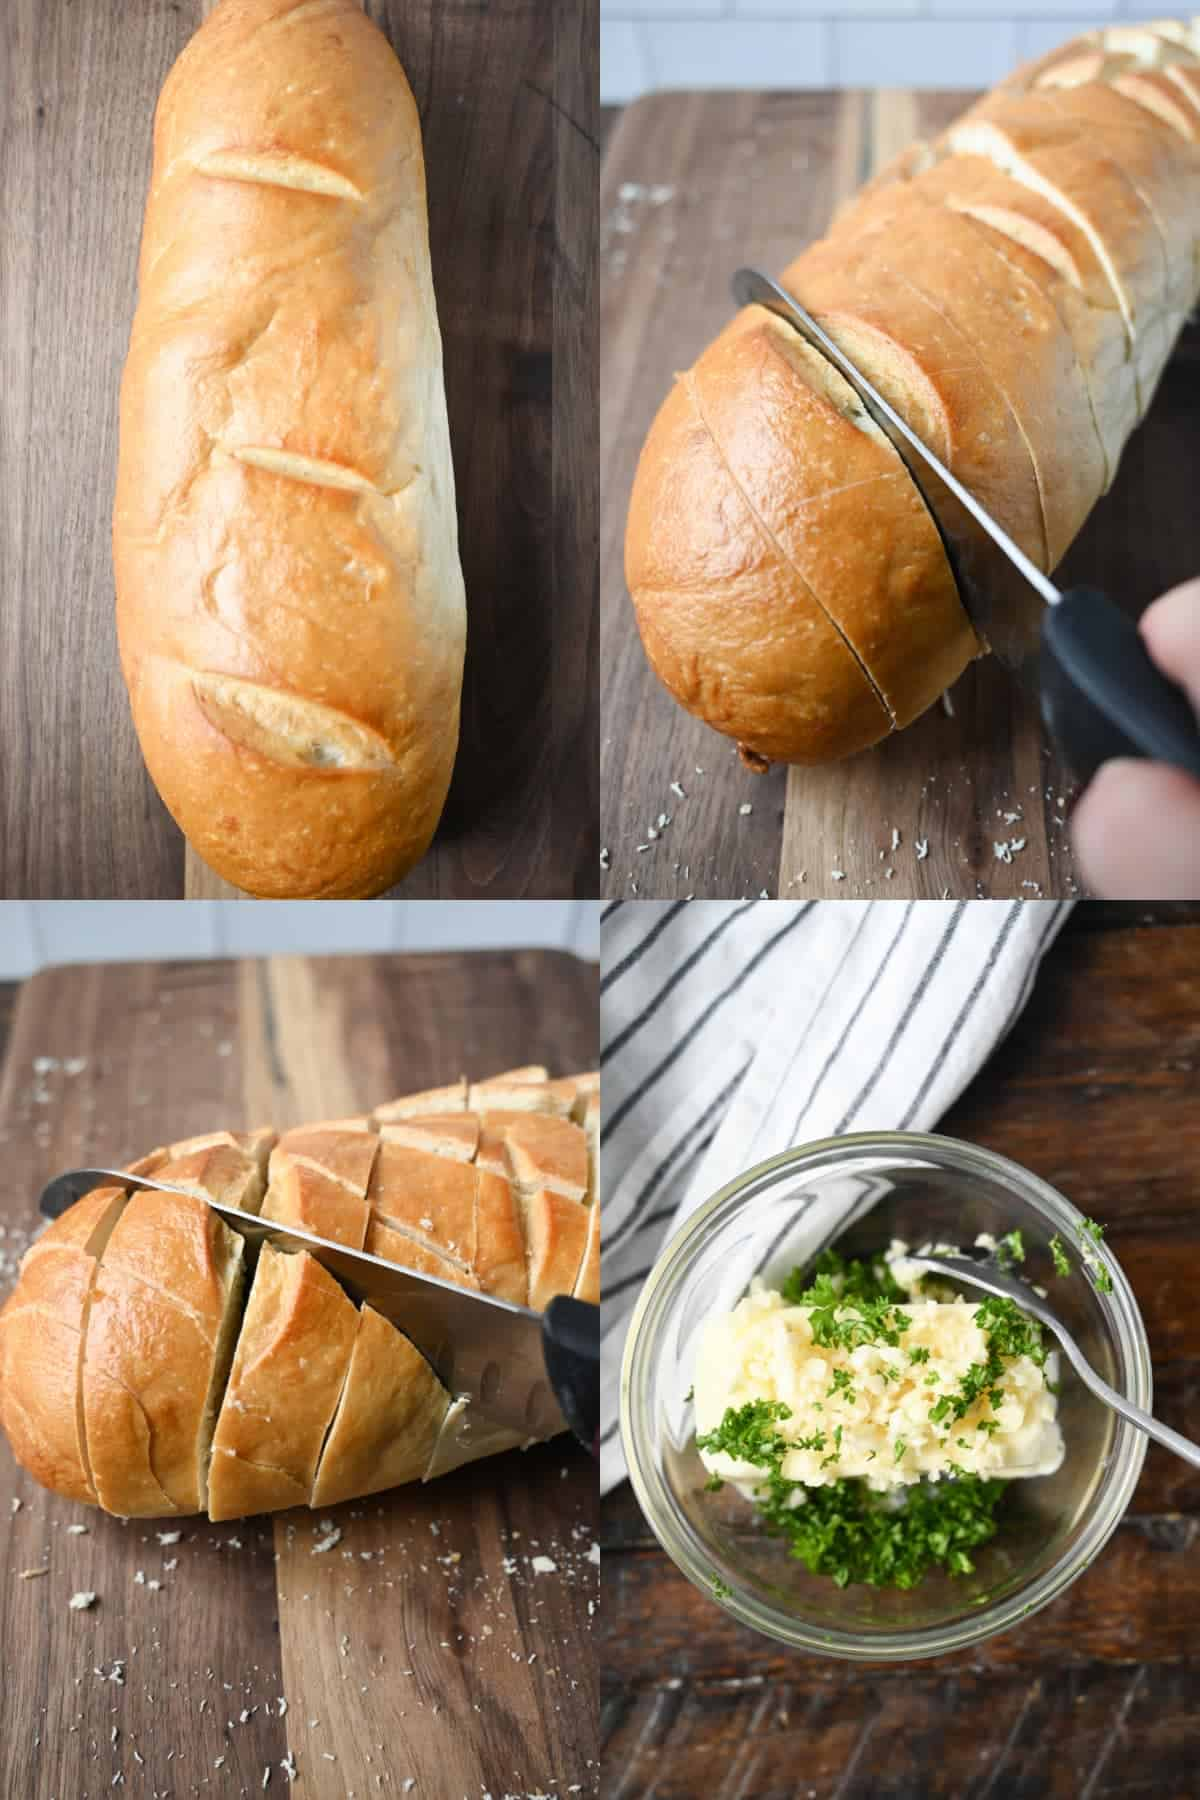 Four process photos. First one, a loaf of frenchbread on a cutting board. Second one, a sharp knif cuttin